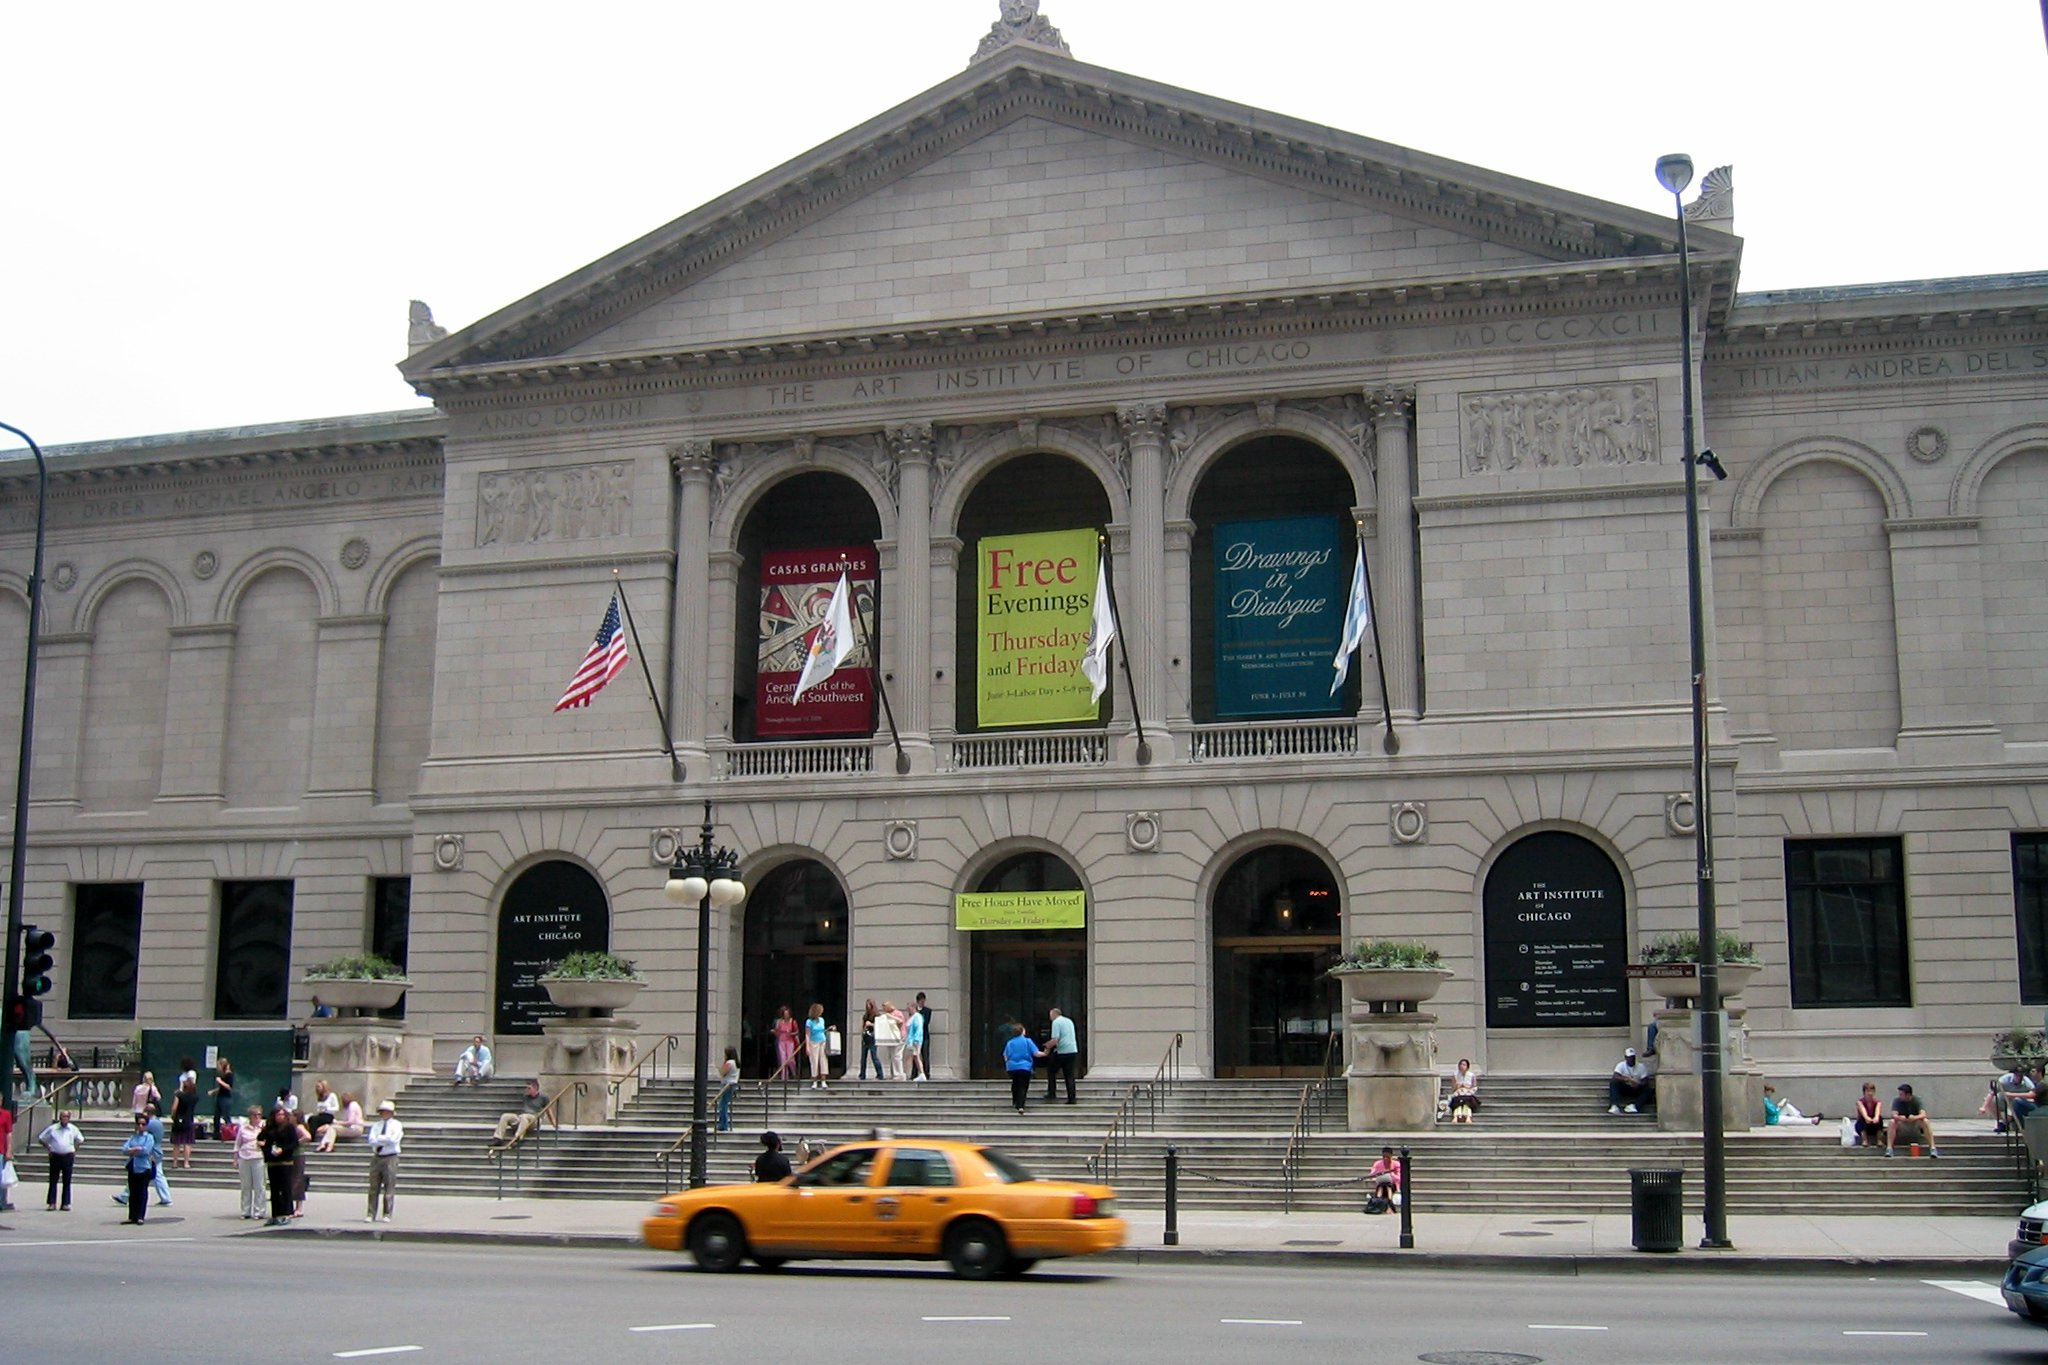 art institute Chicago citypass® includes a ticket to the art institute of chicago, including all special exhibits and audio tour save 51% with citypass®.